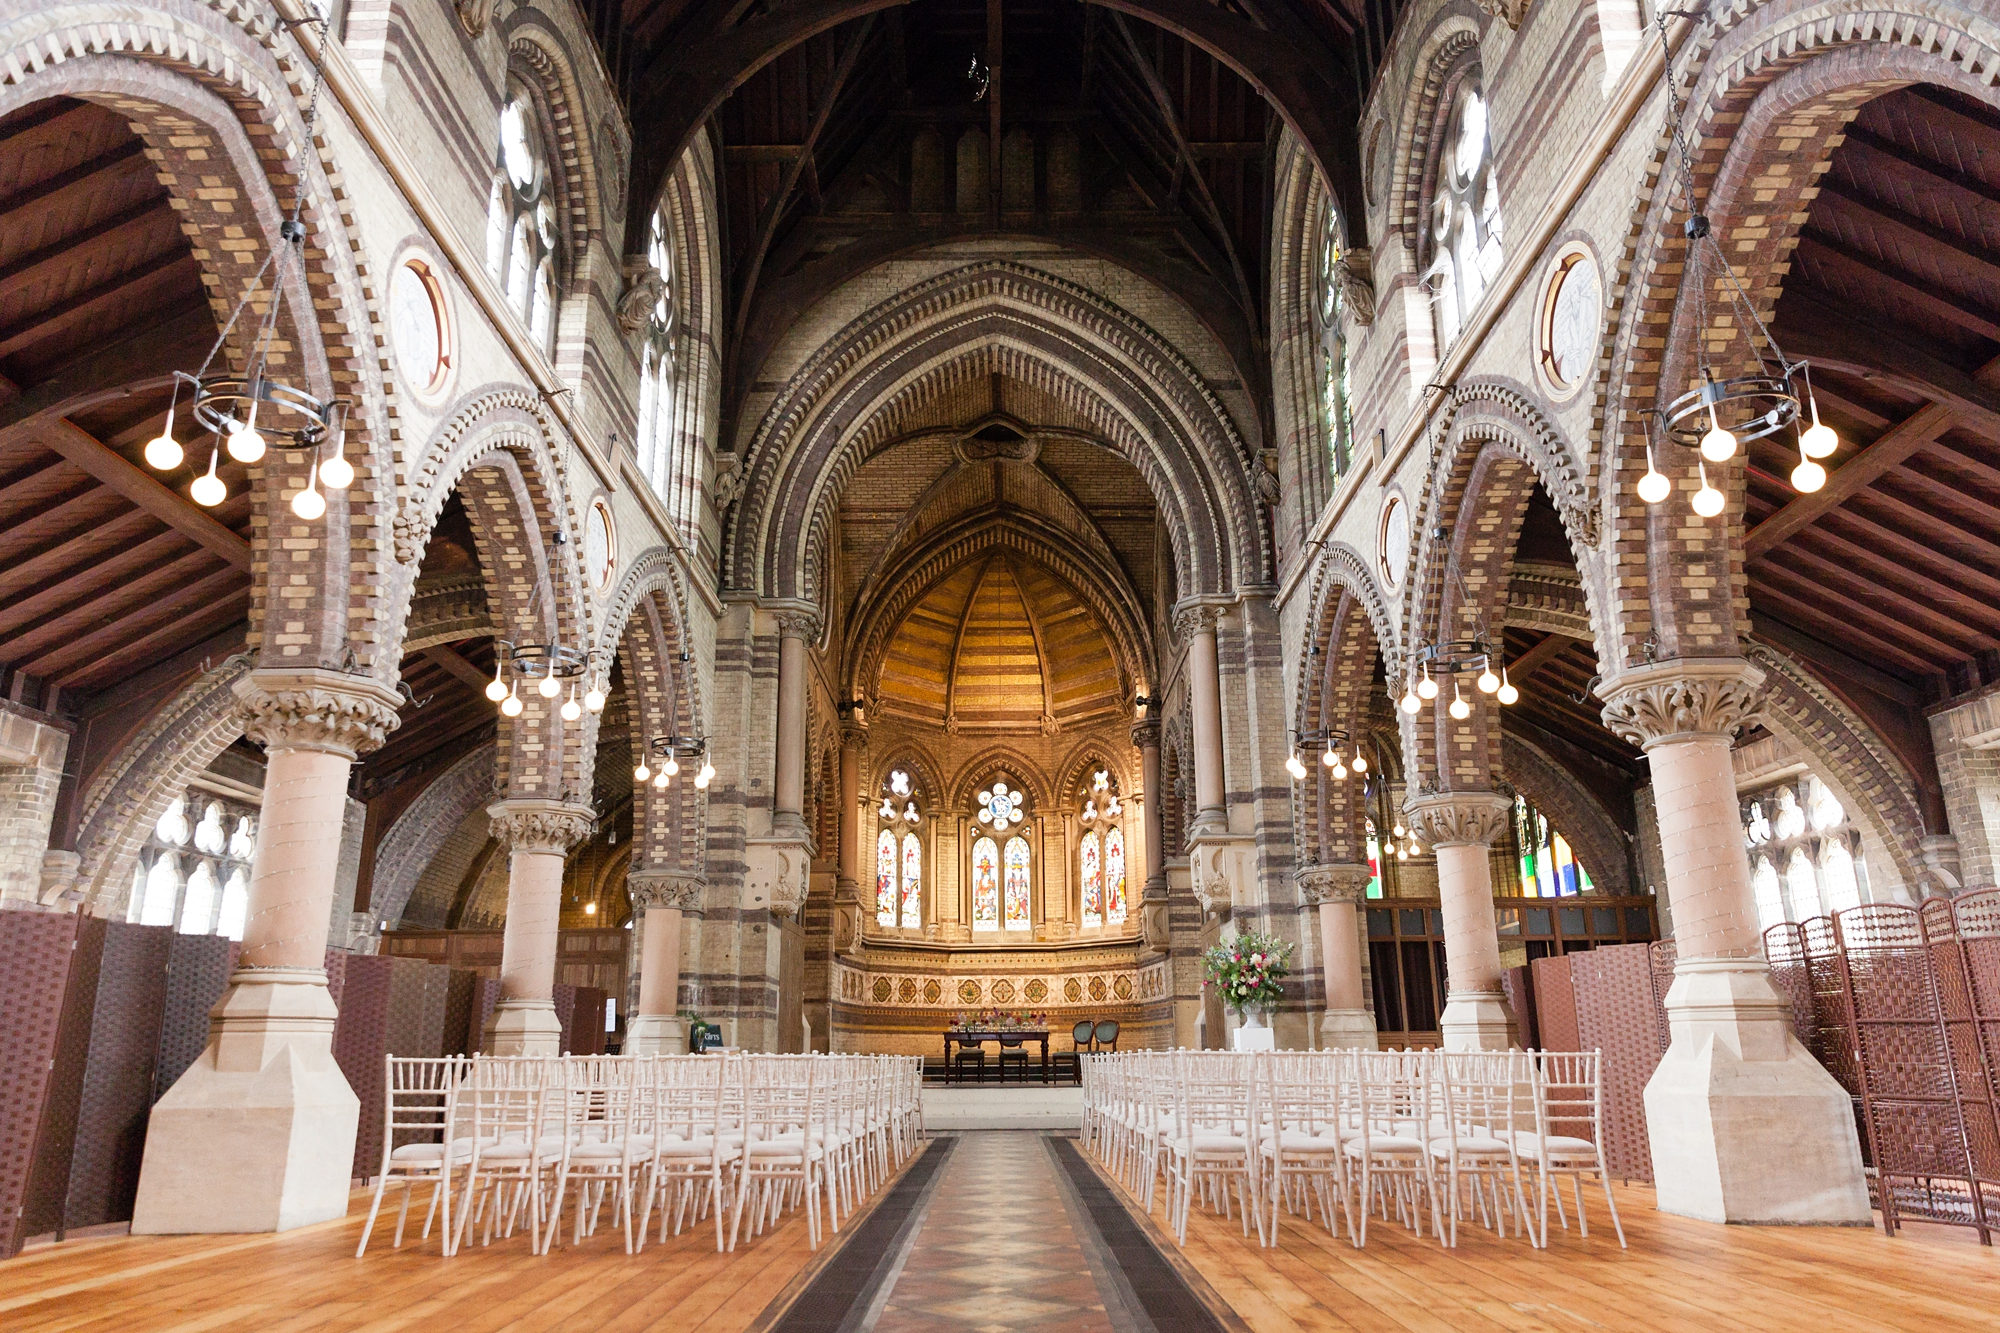 St Stephens Hampstead Heath Wedding Venue interior photograph set up for wedding